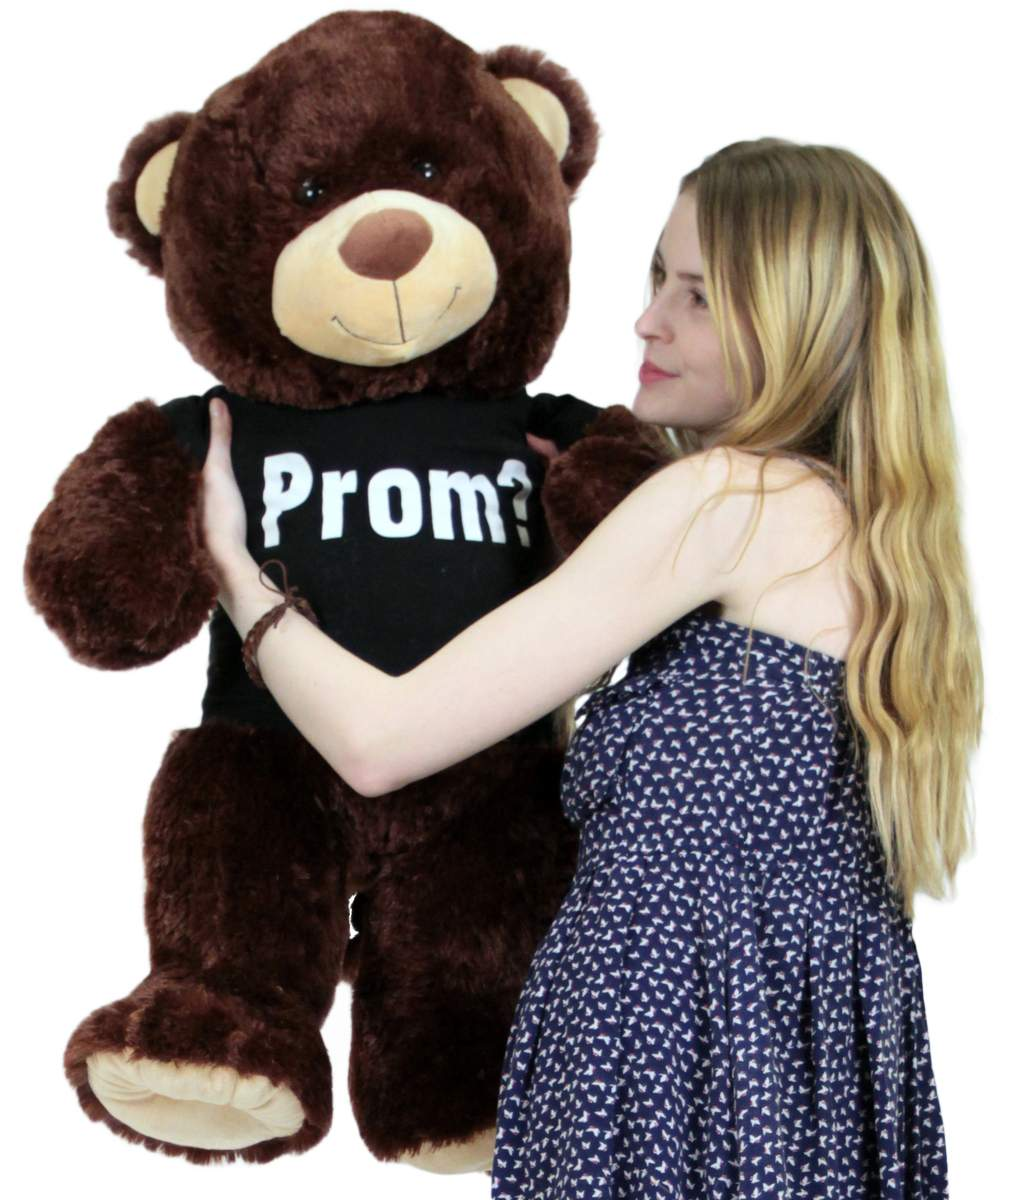 Prom Giant Teddy Bear 36 Inch Soft Wears Tshirt Will You Go To Prom With Me by BigPlush